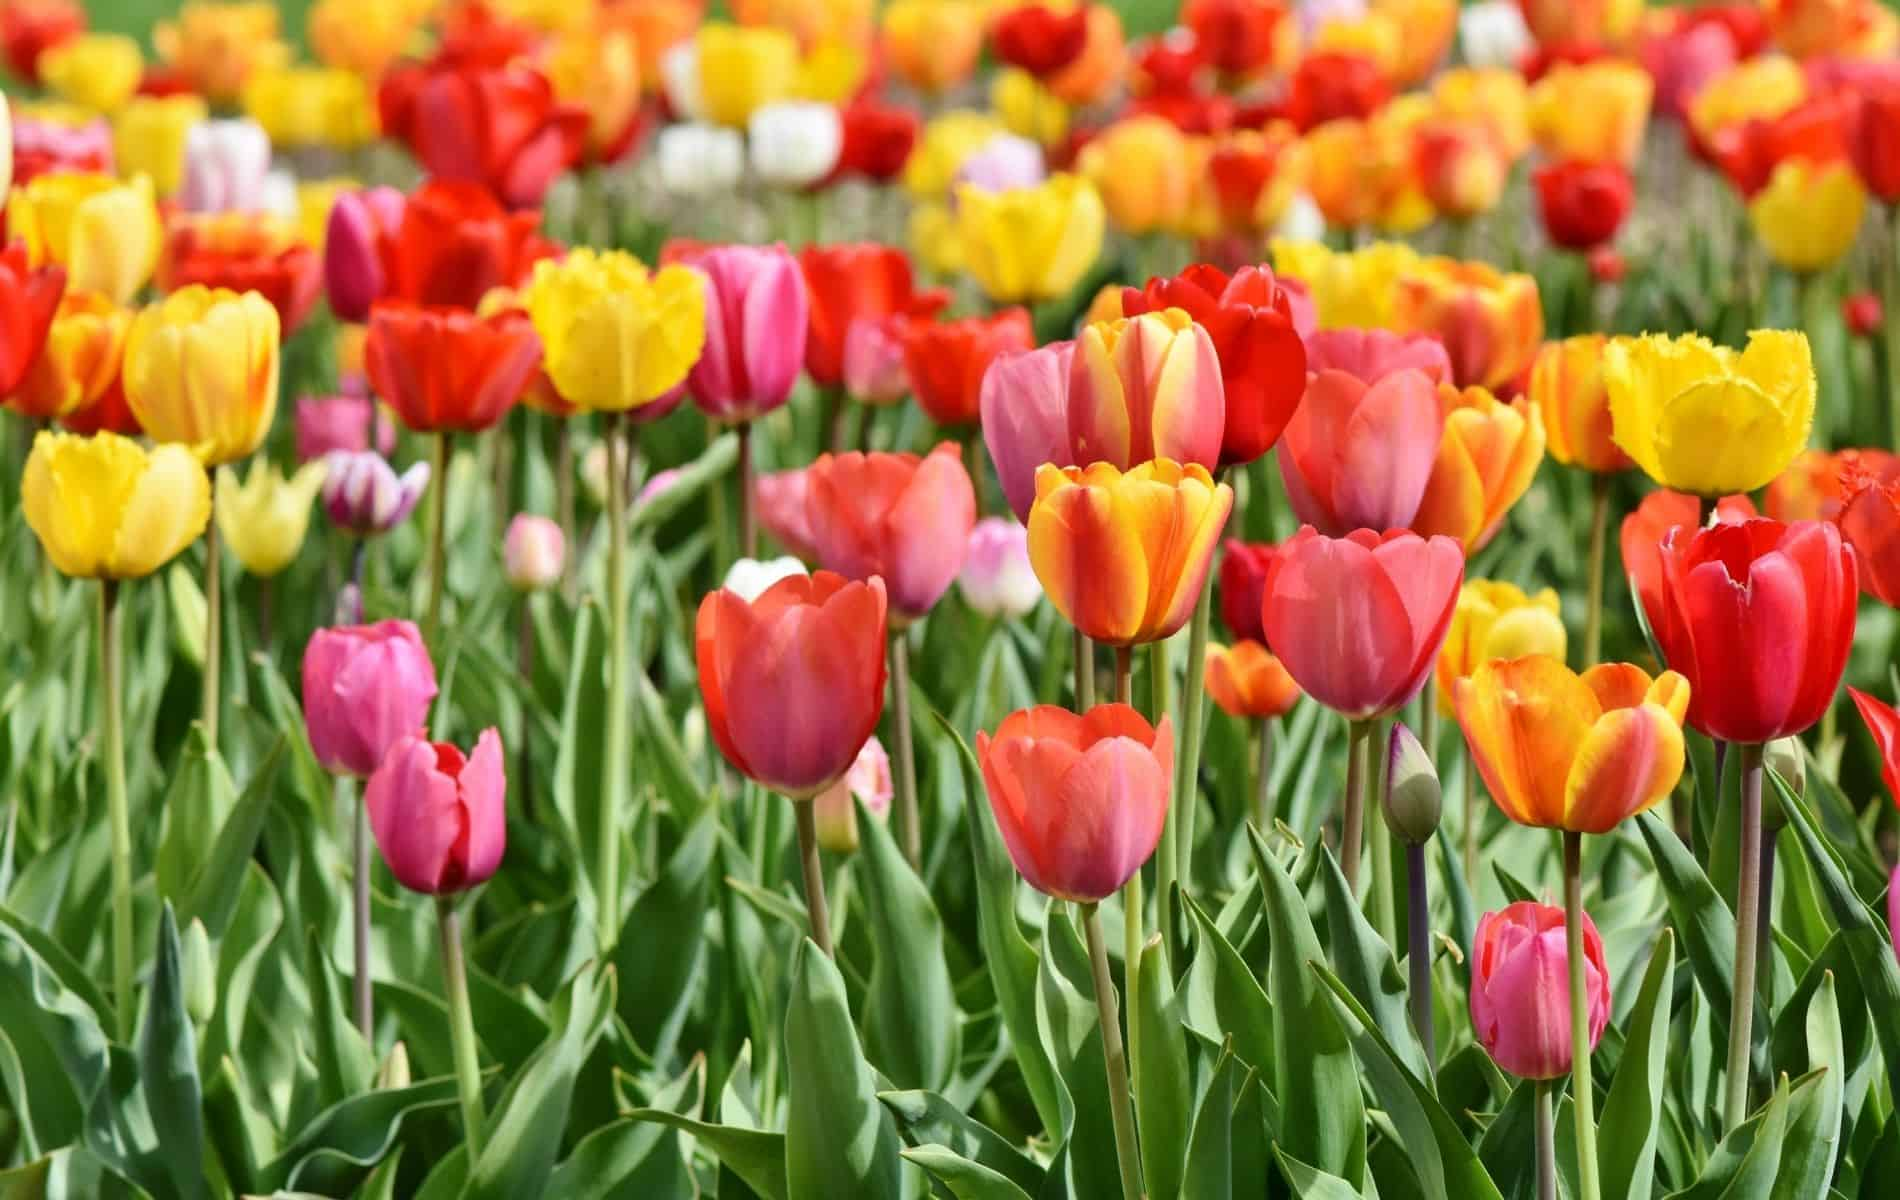 Which Country Is Famous for Growing the Tulip Flowers